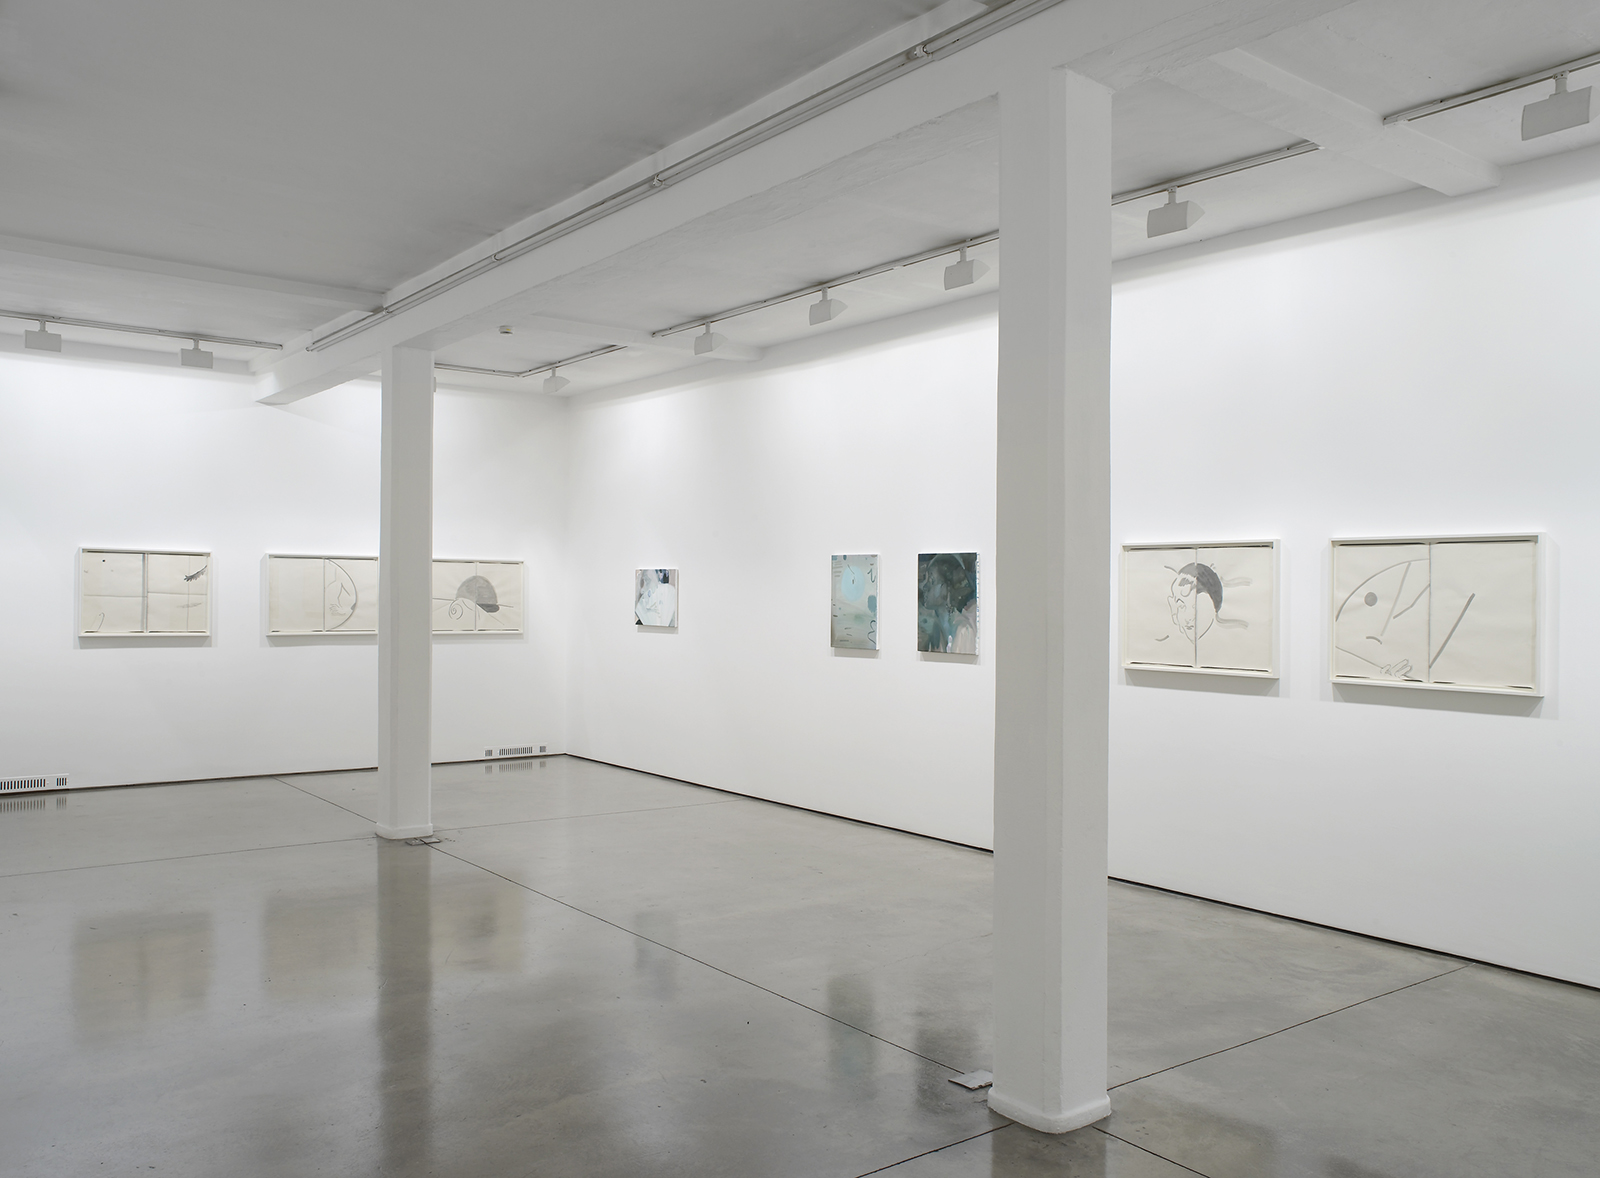 2 - Kaye Donachie at Maureen Paley - 4.02.2014